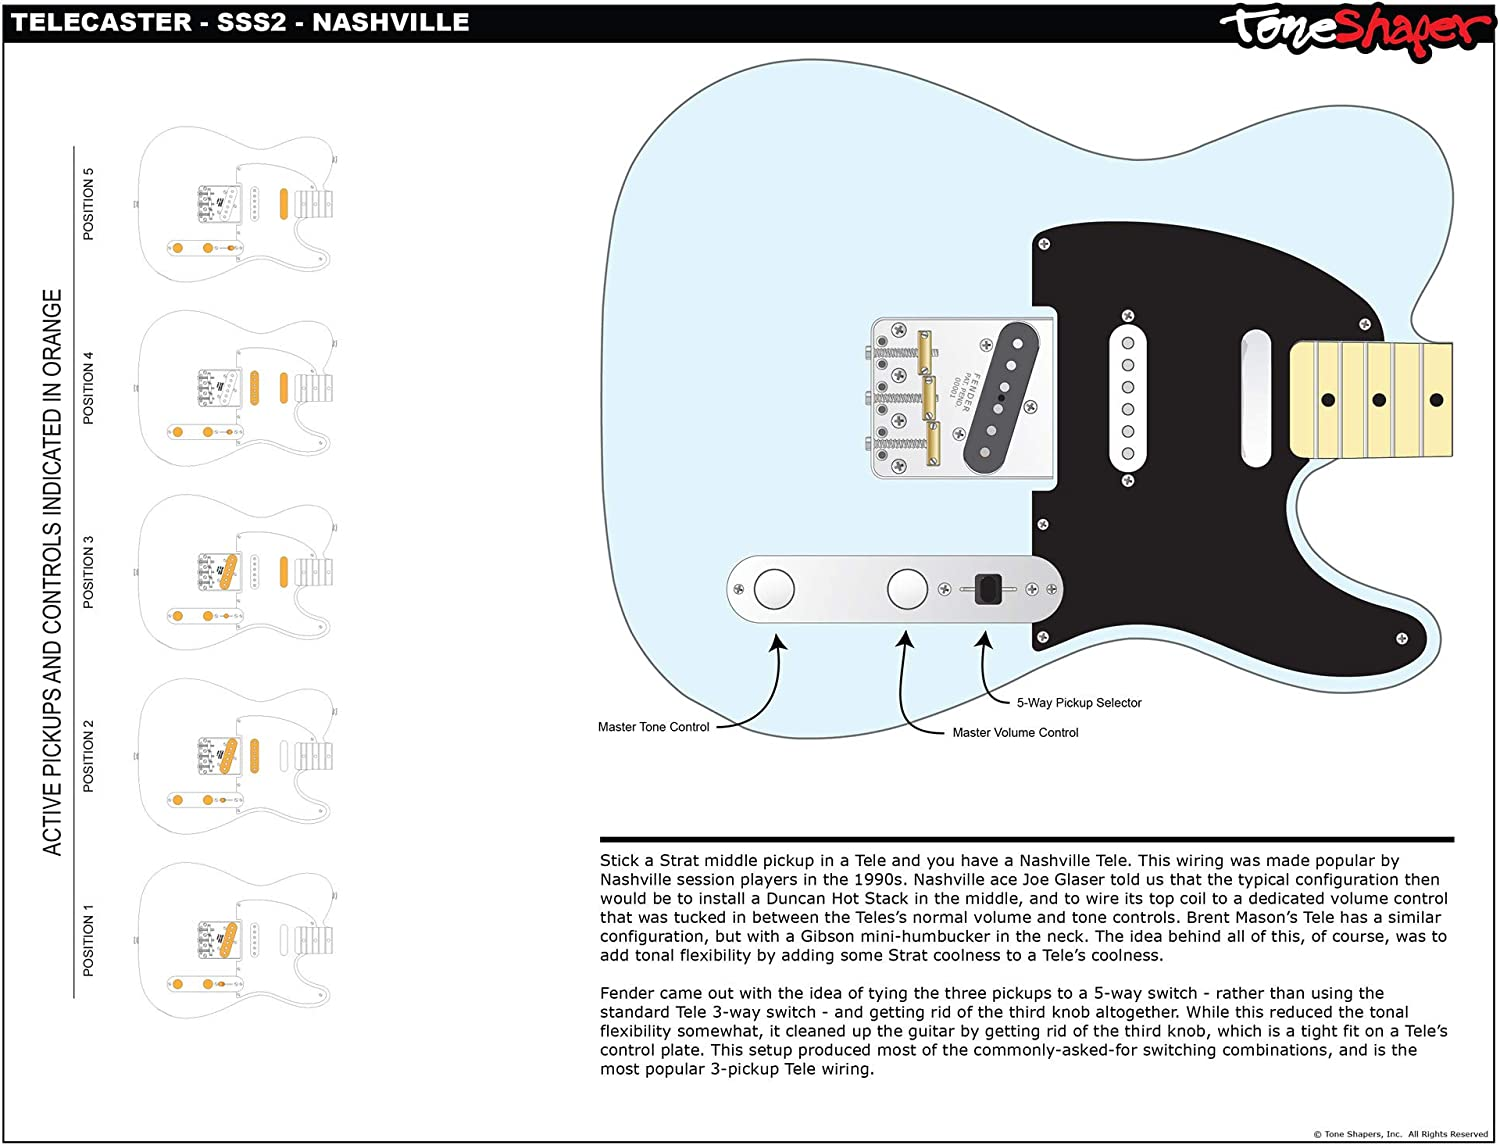 fender deluxe nashville telecaster wiring diagram free picture amazon com toneshaper guitar wiring kit  for fender telecaster  toneshaper guitar wiring kit